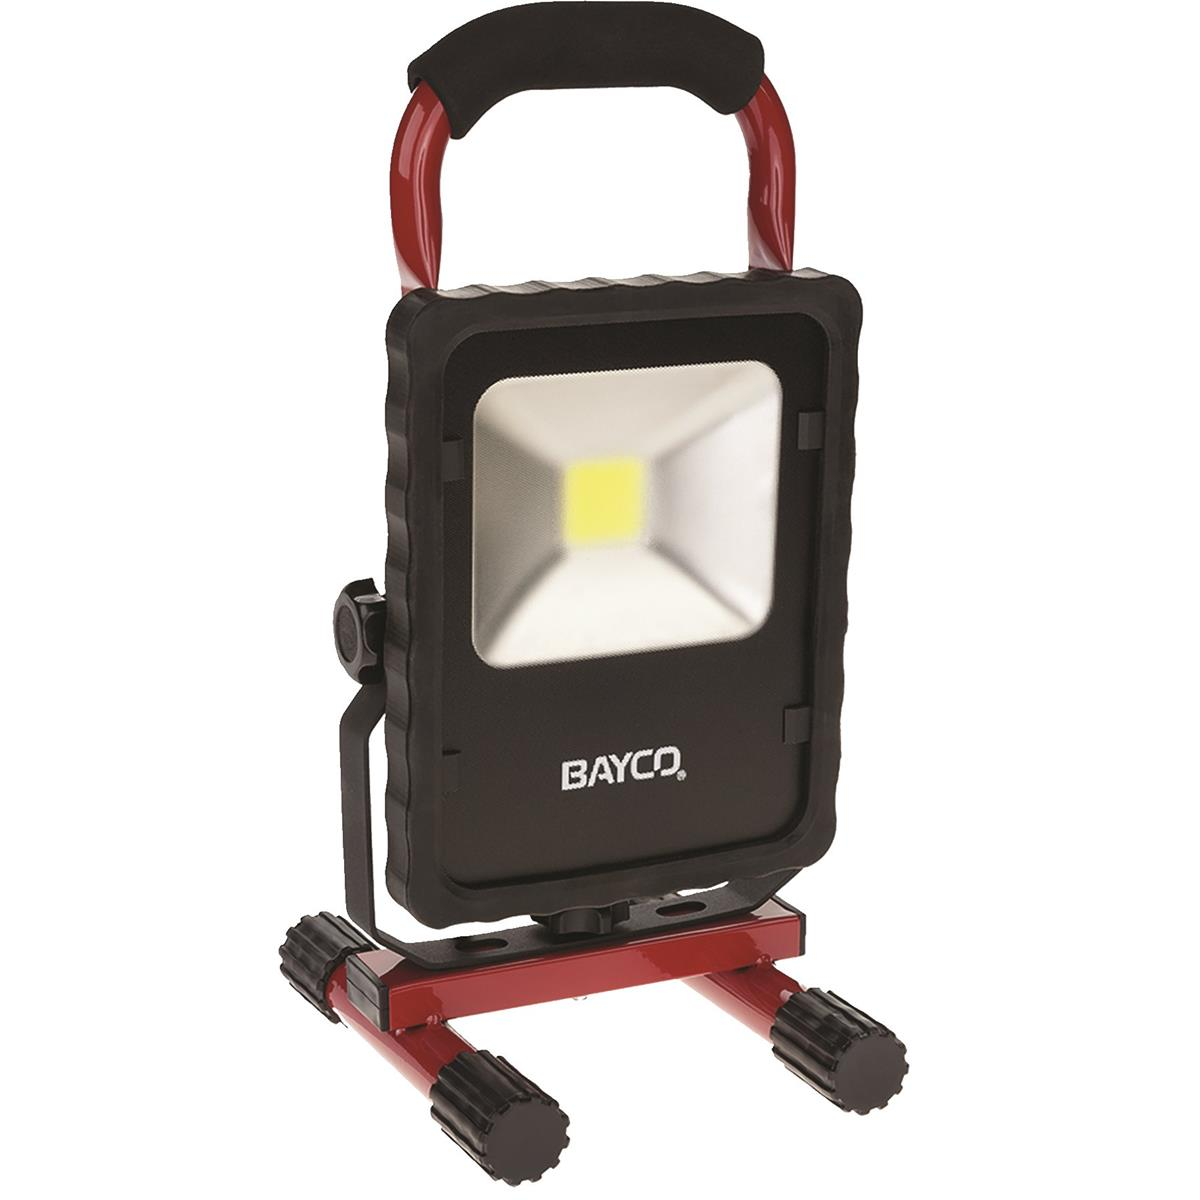 Multi-Angle and Swivel LED Work Light